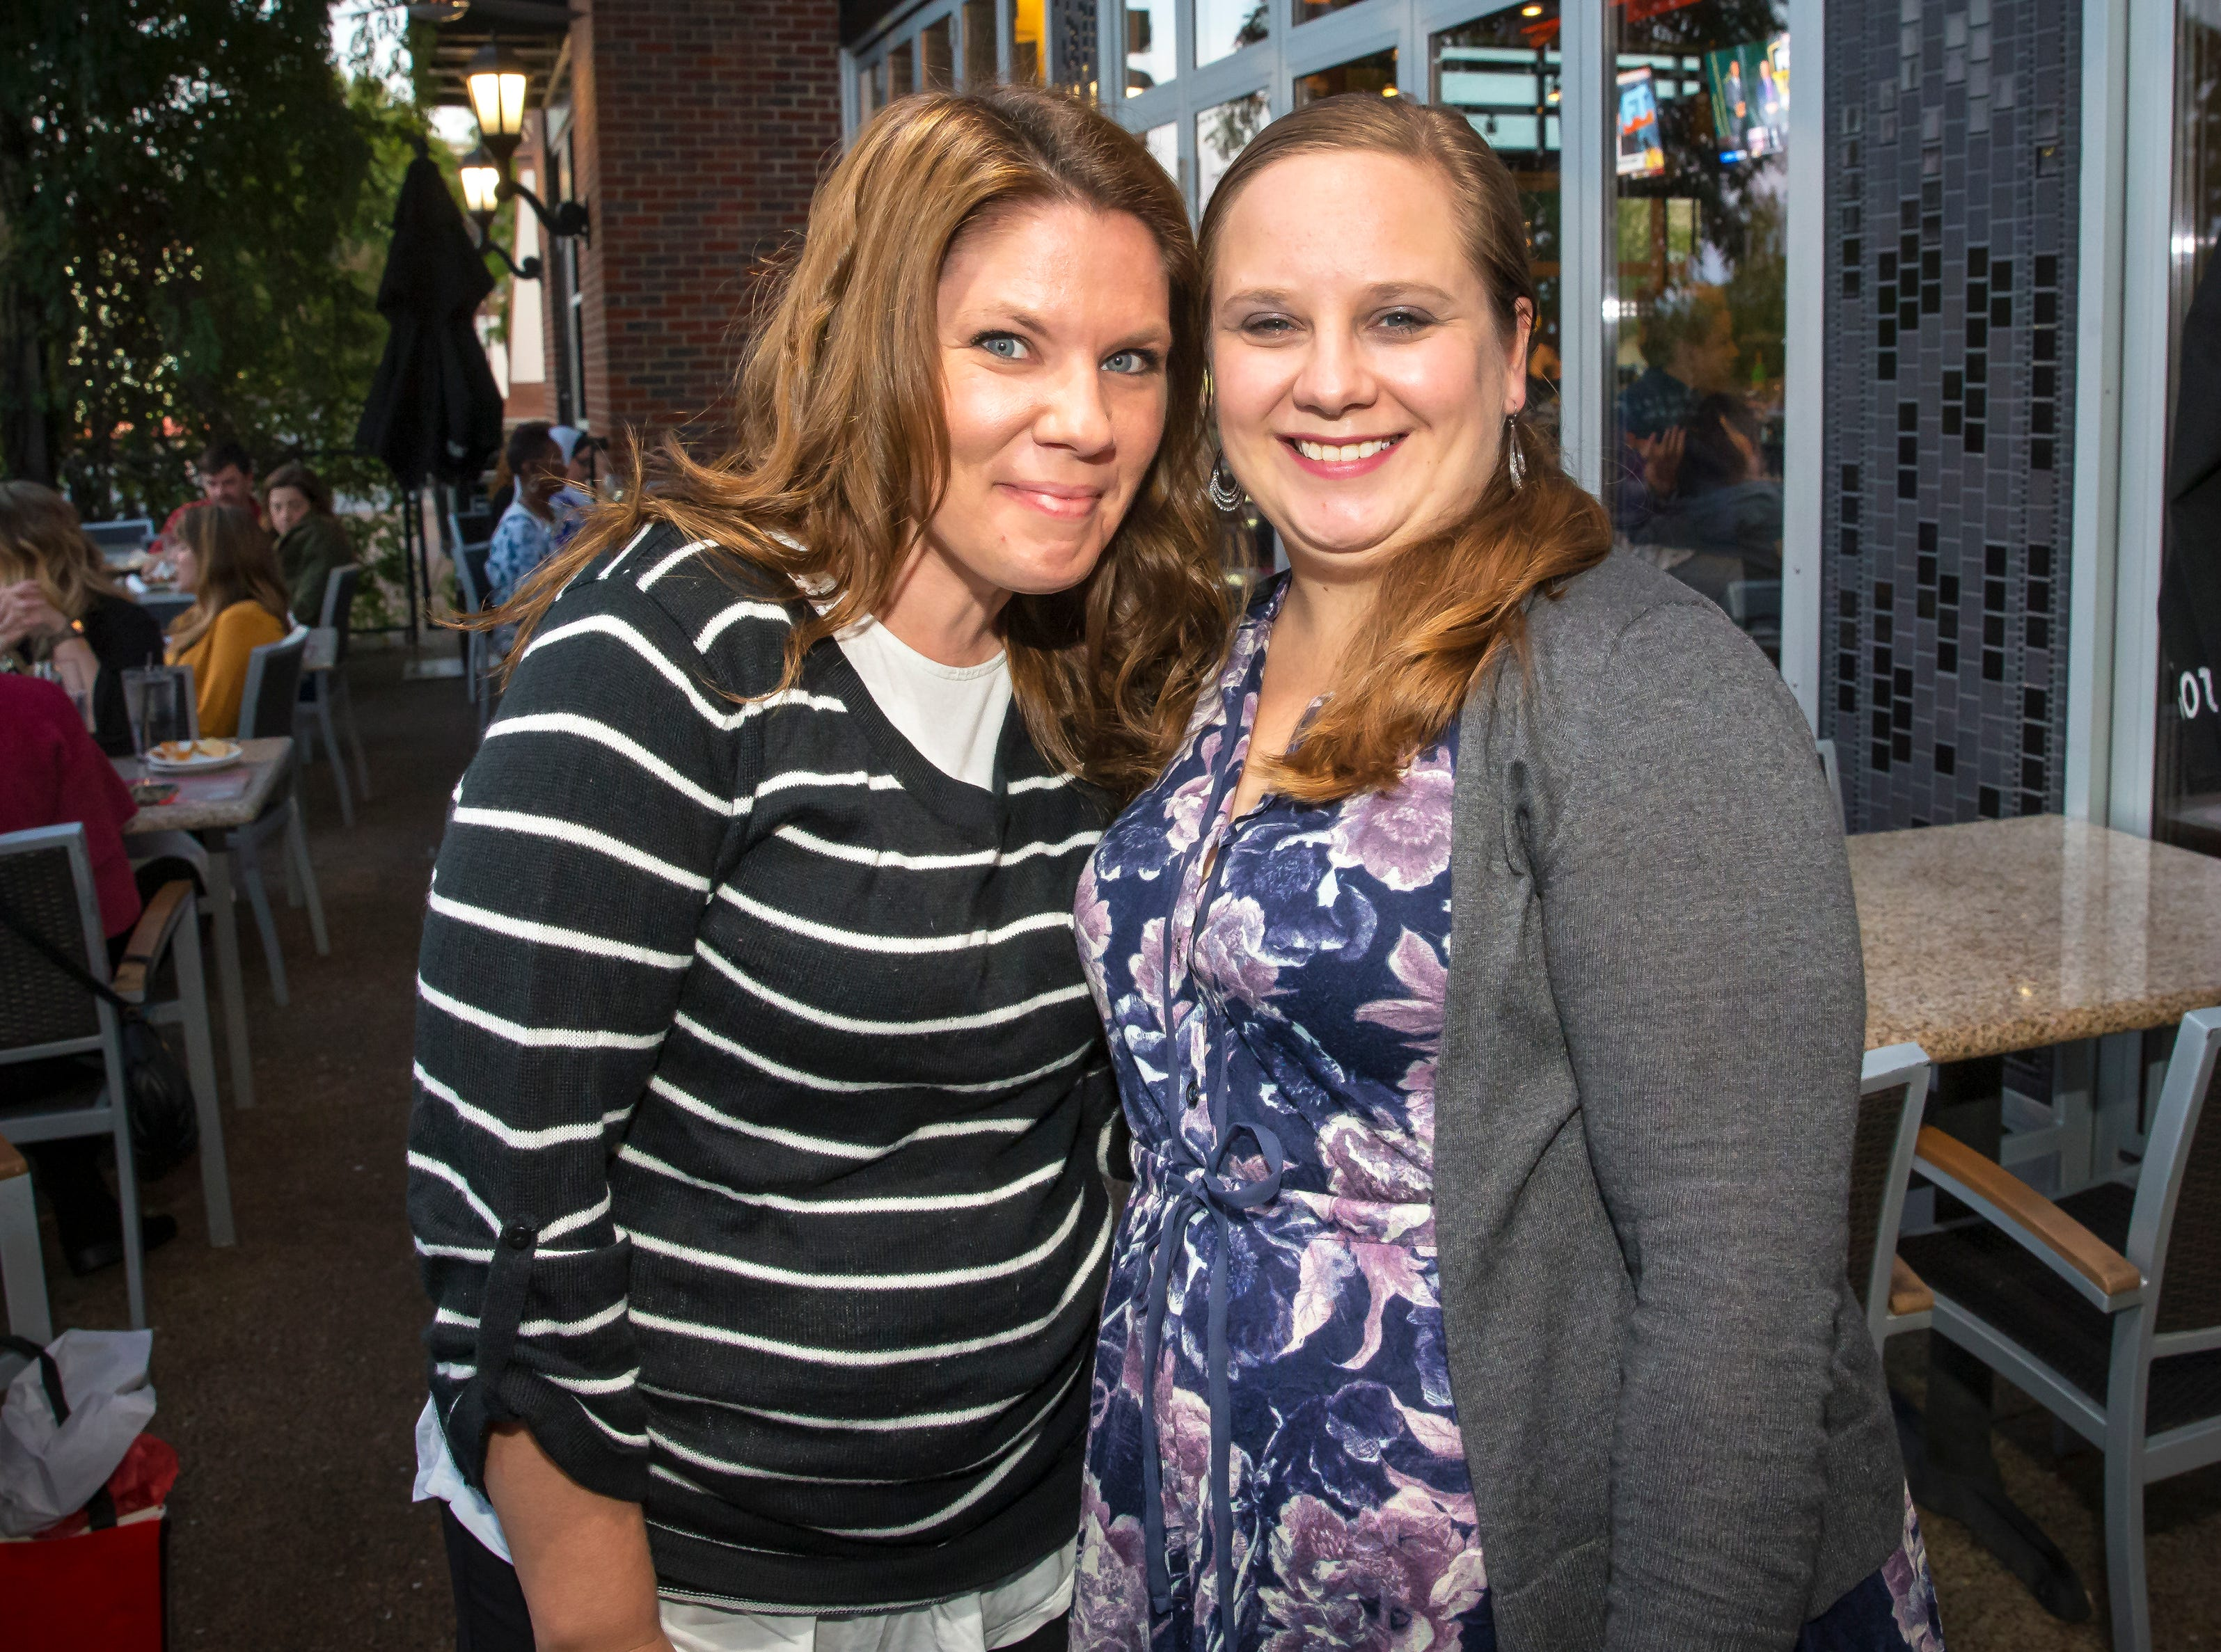 Marla Allen and Sarah Clark at the Murfreesboro Magazine Most Beautiful People event held at Bar Louie.photo by Jim Davis/for the DNJ